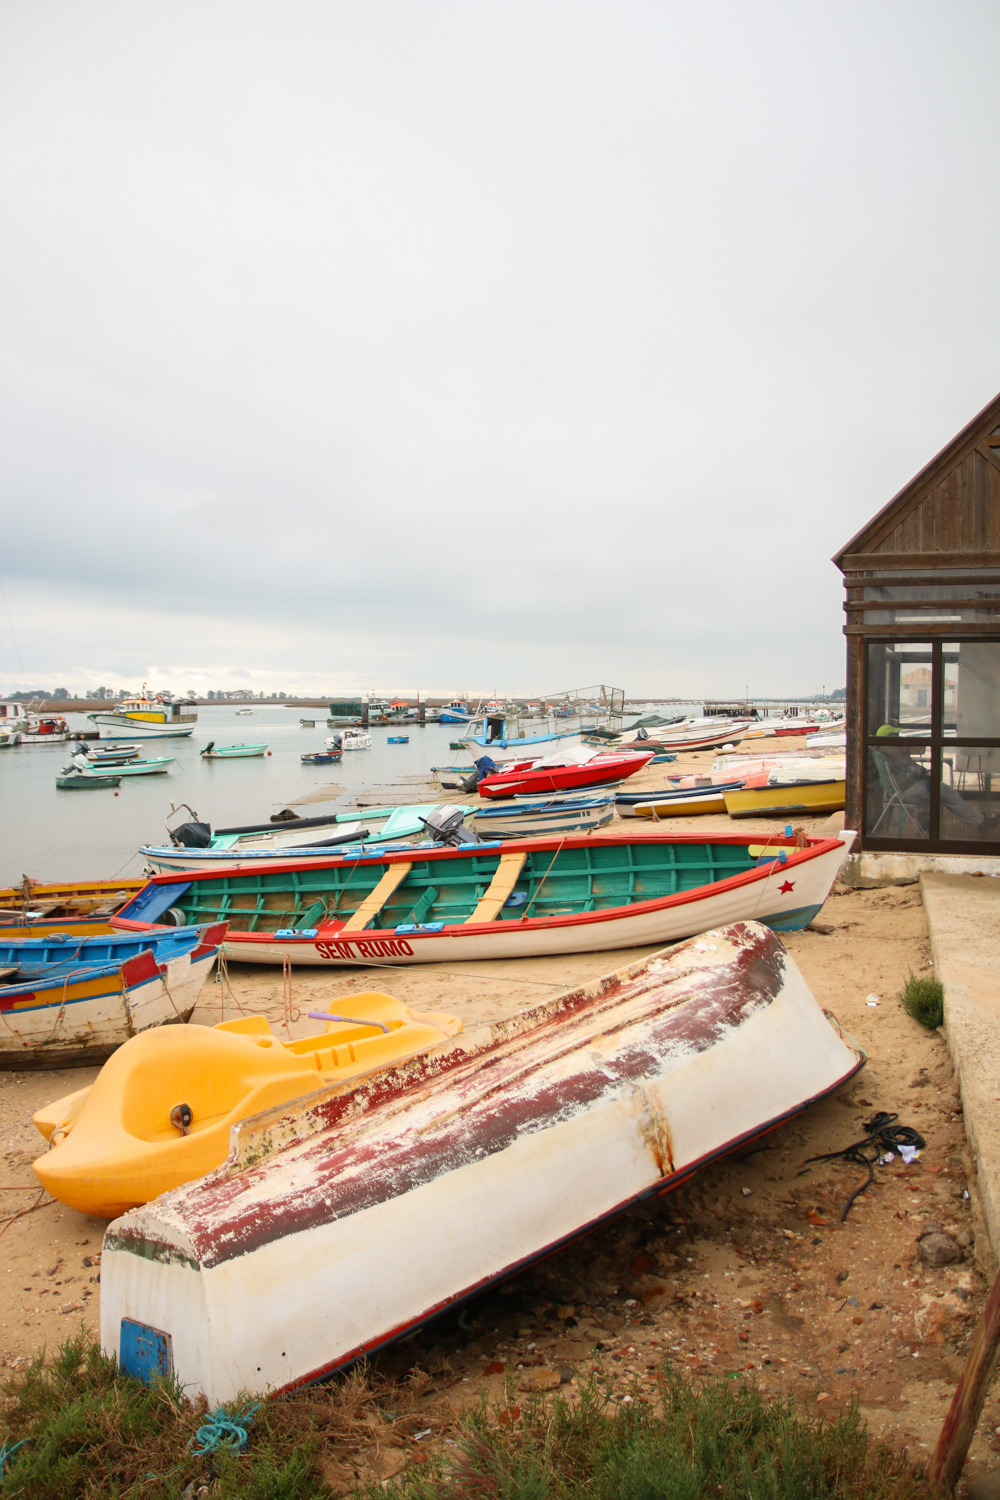 Boats in Santa Luzia, Portugal